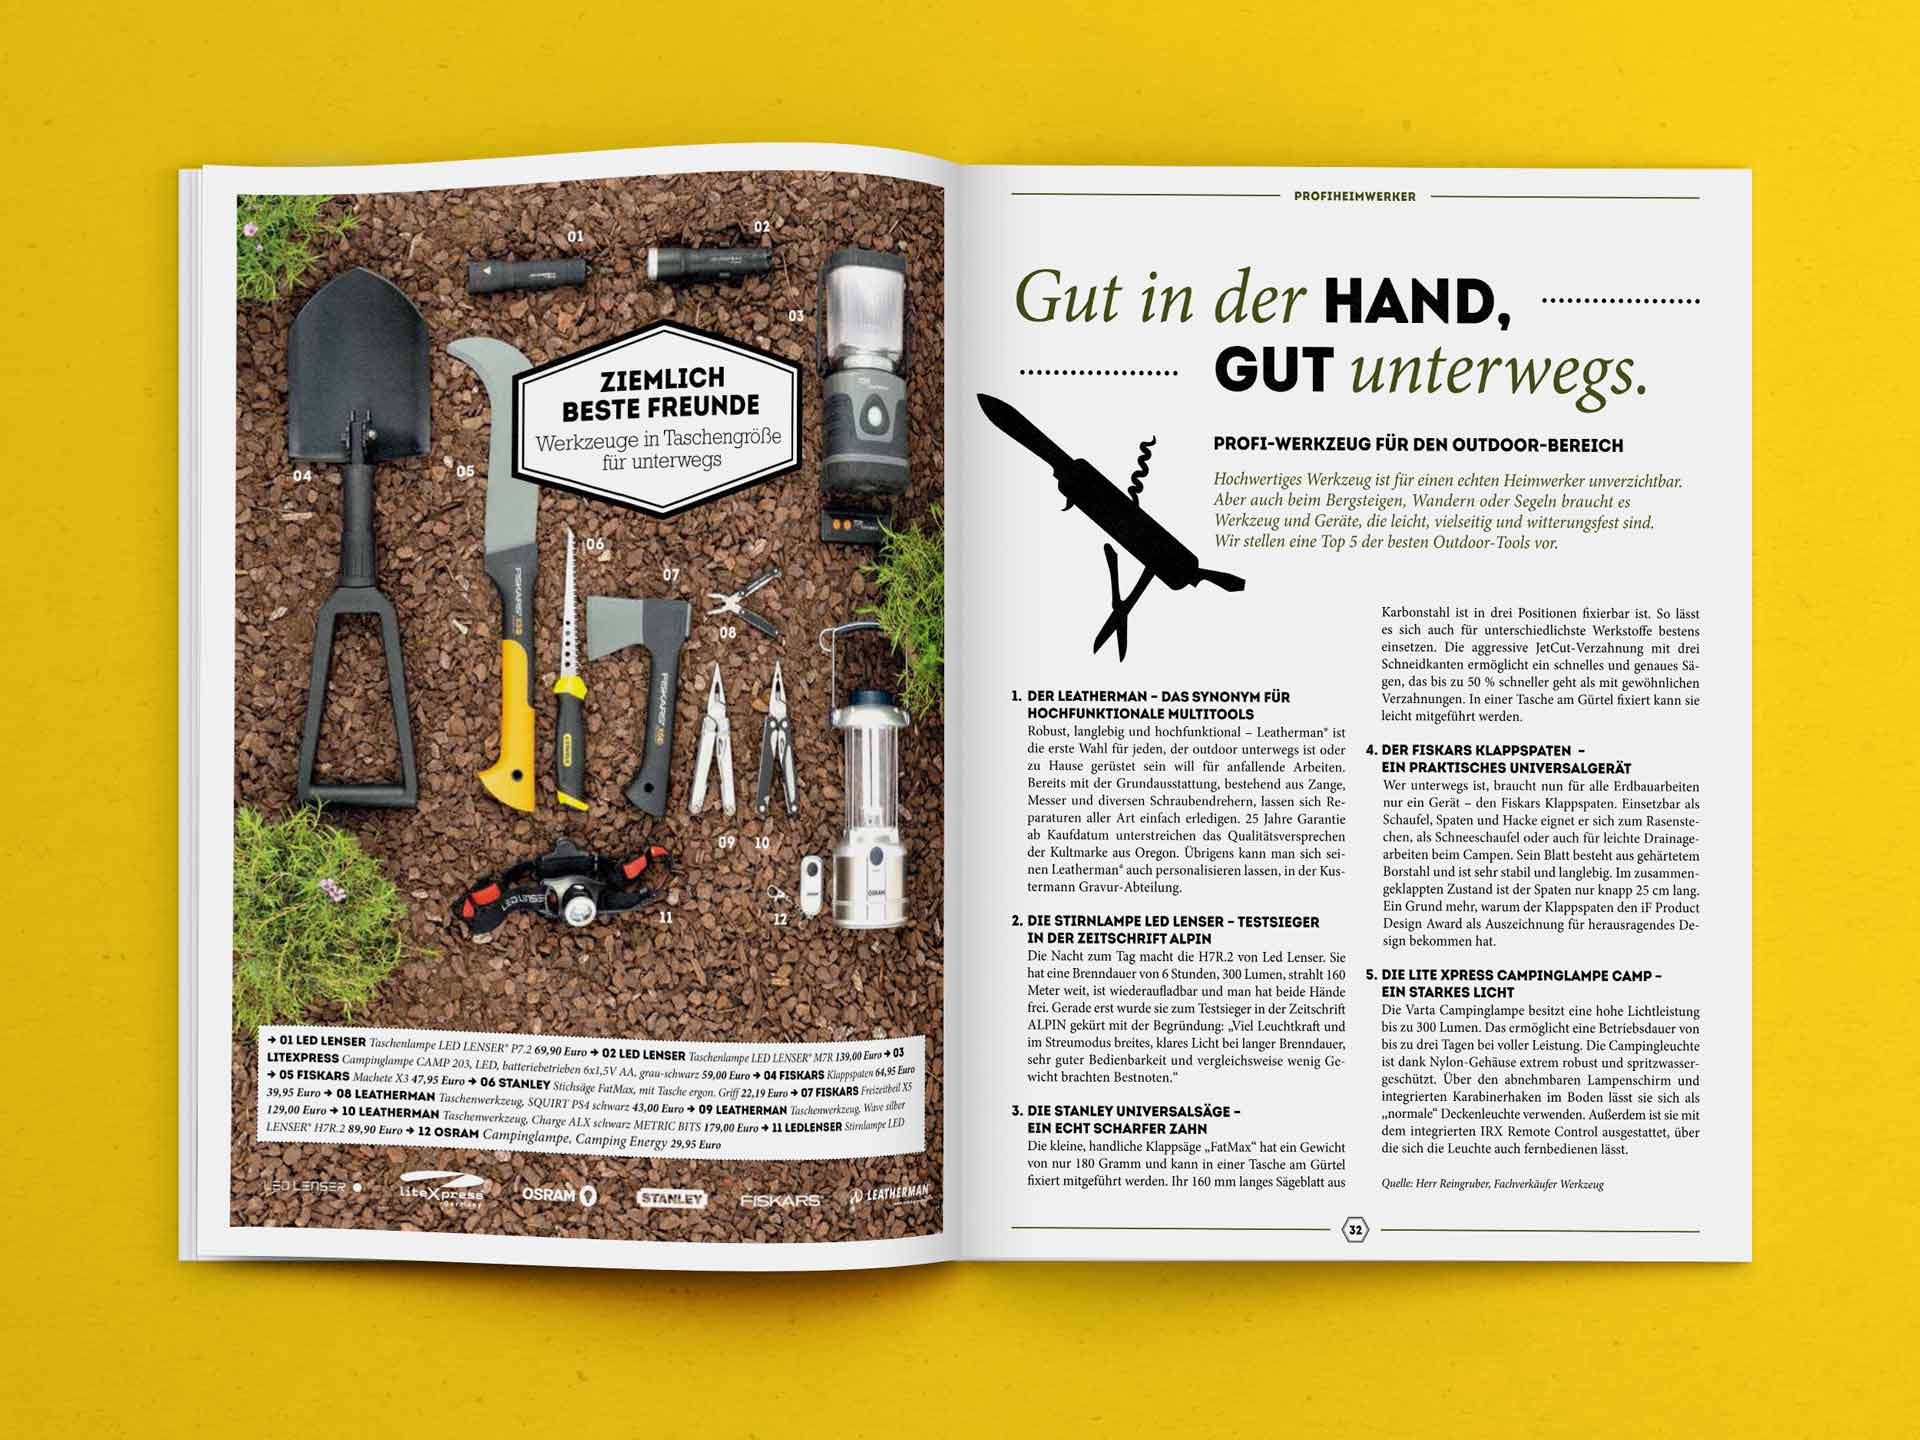 Spread with Garden Tools in the Seraph Magazine by Kustermann